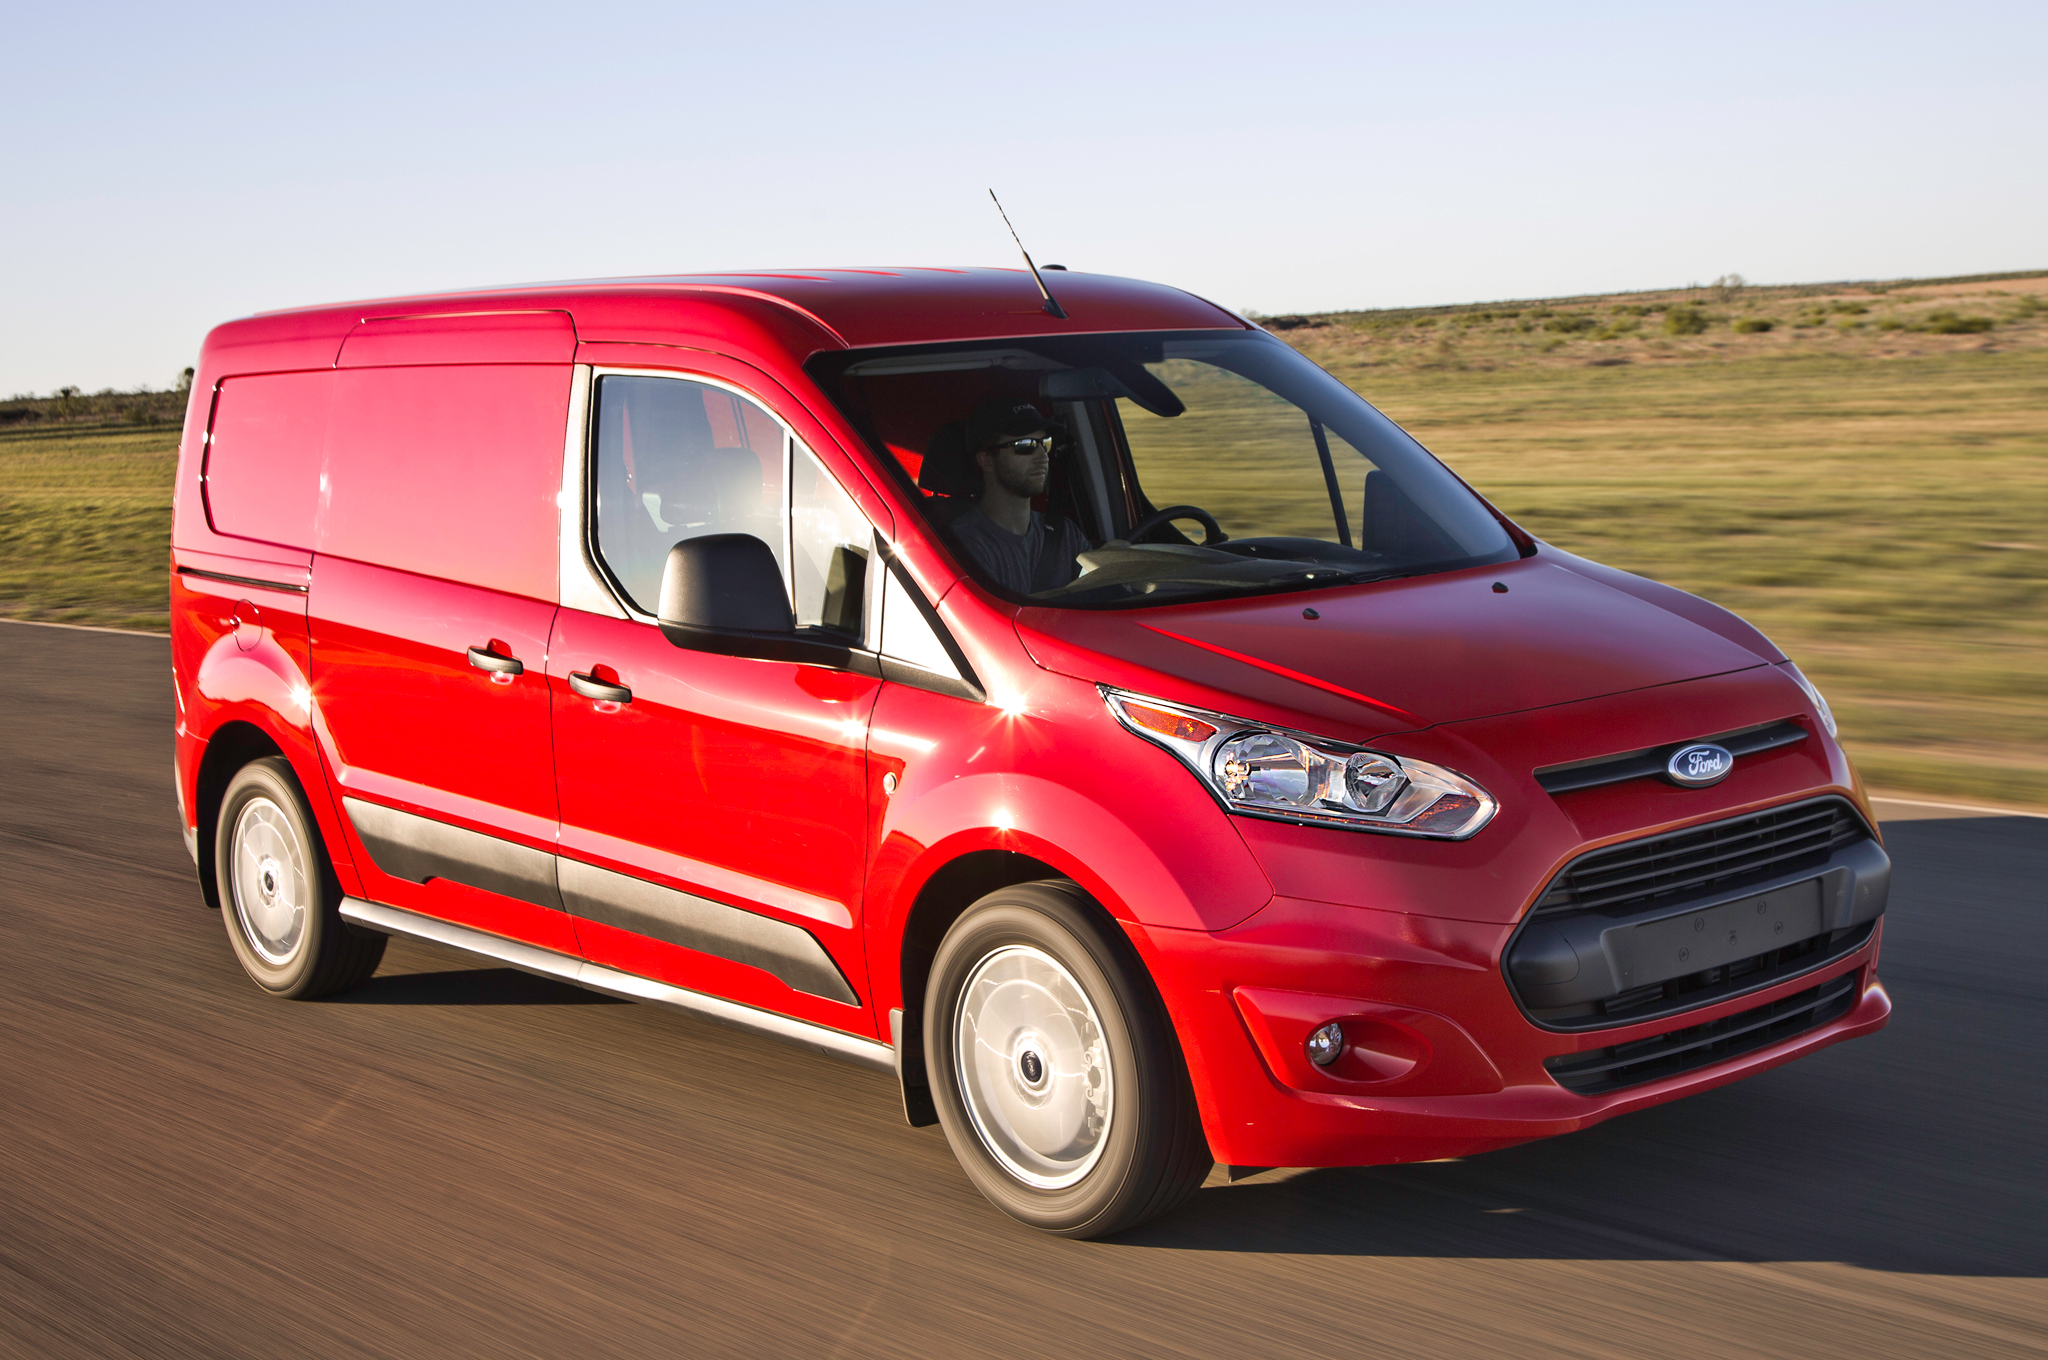 10 Vehicles the USPS Should Consider in the Search for New Mail Trucks